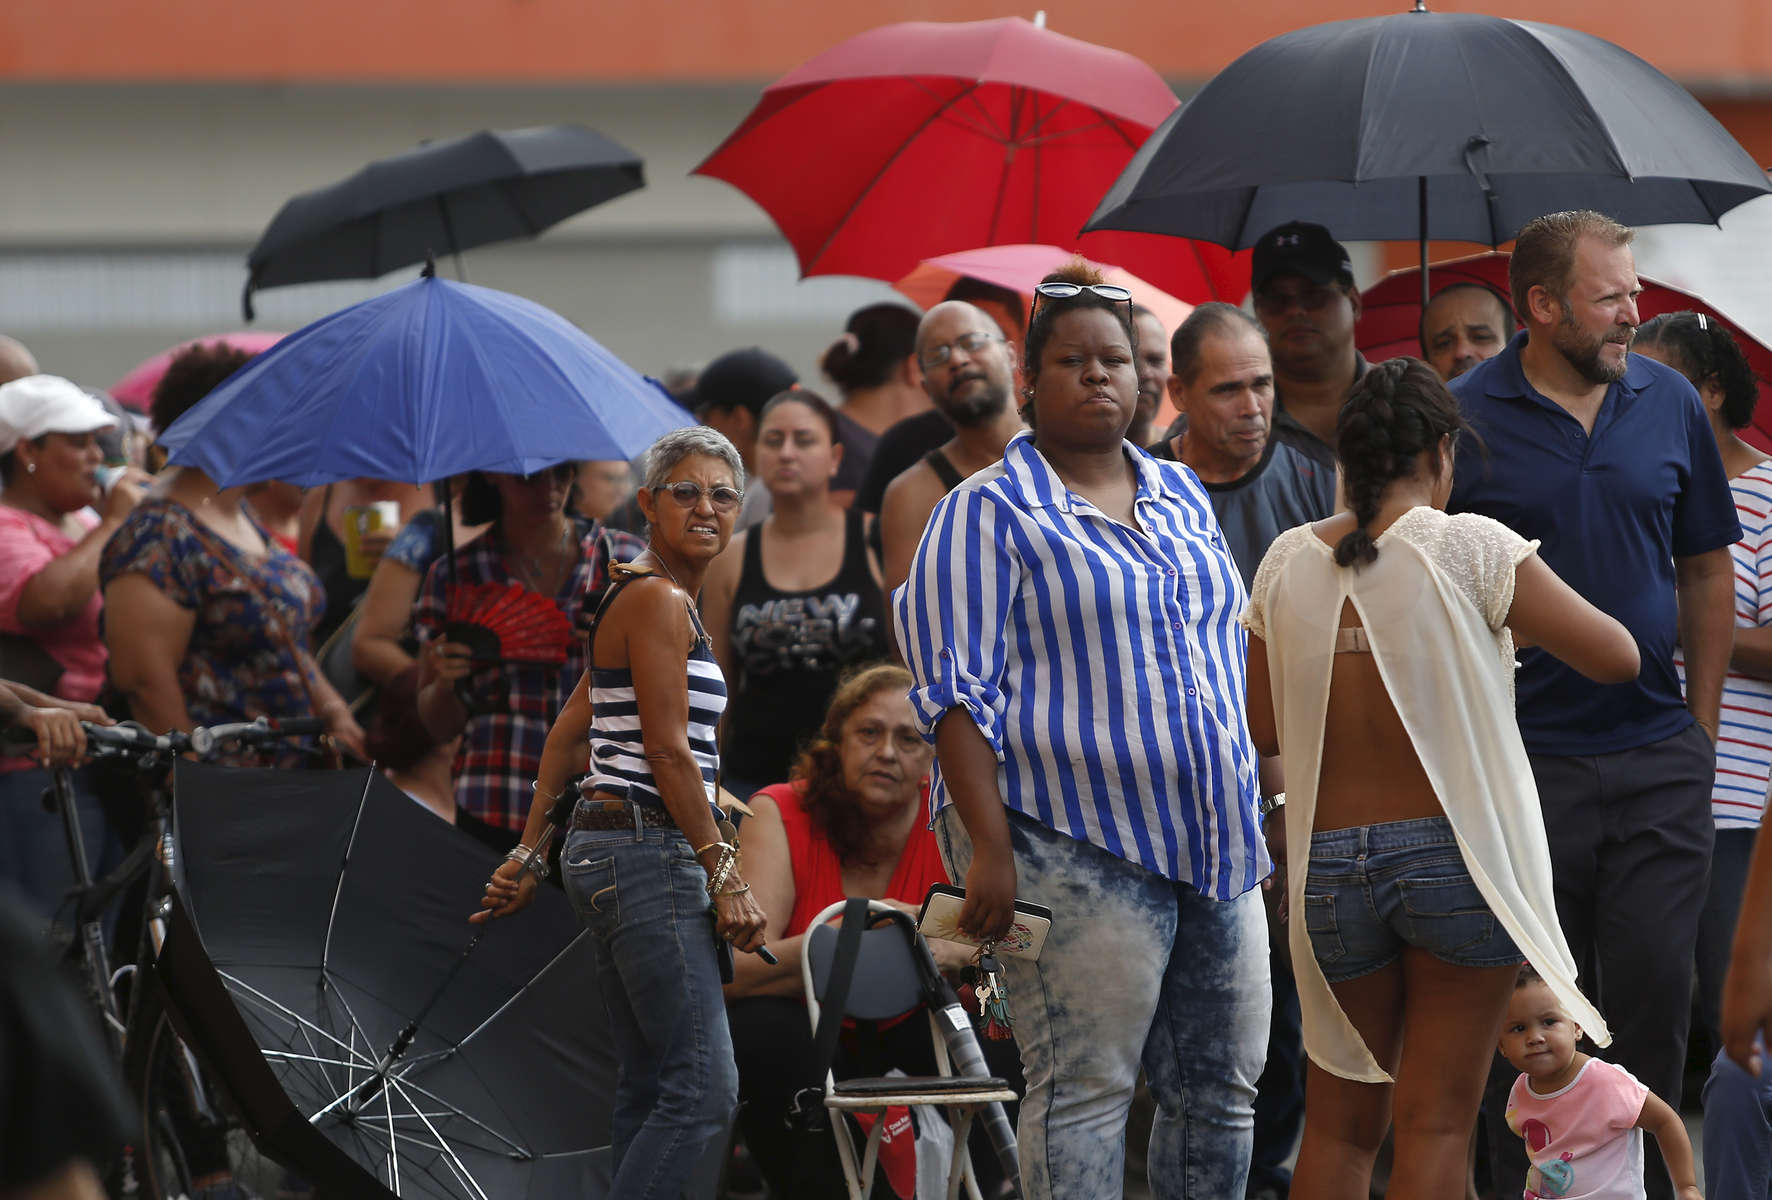 Caguas, PR -- 9/29/2017 -  By 9am more than 500 people were waiting in line to use the ATM outside of Banco Popular in Caguas. Without power, cash was the only option for purchasing the scarce supplies that were available to local residents. Long lines were everywhere in cities like Caguas, some lasting for days for essentials like fuel, food, water, and even laundry.